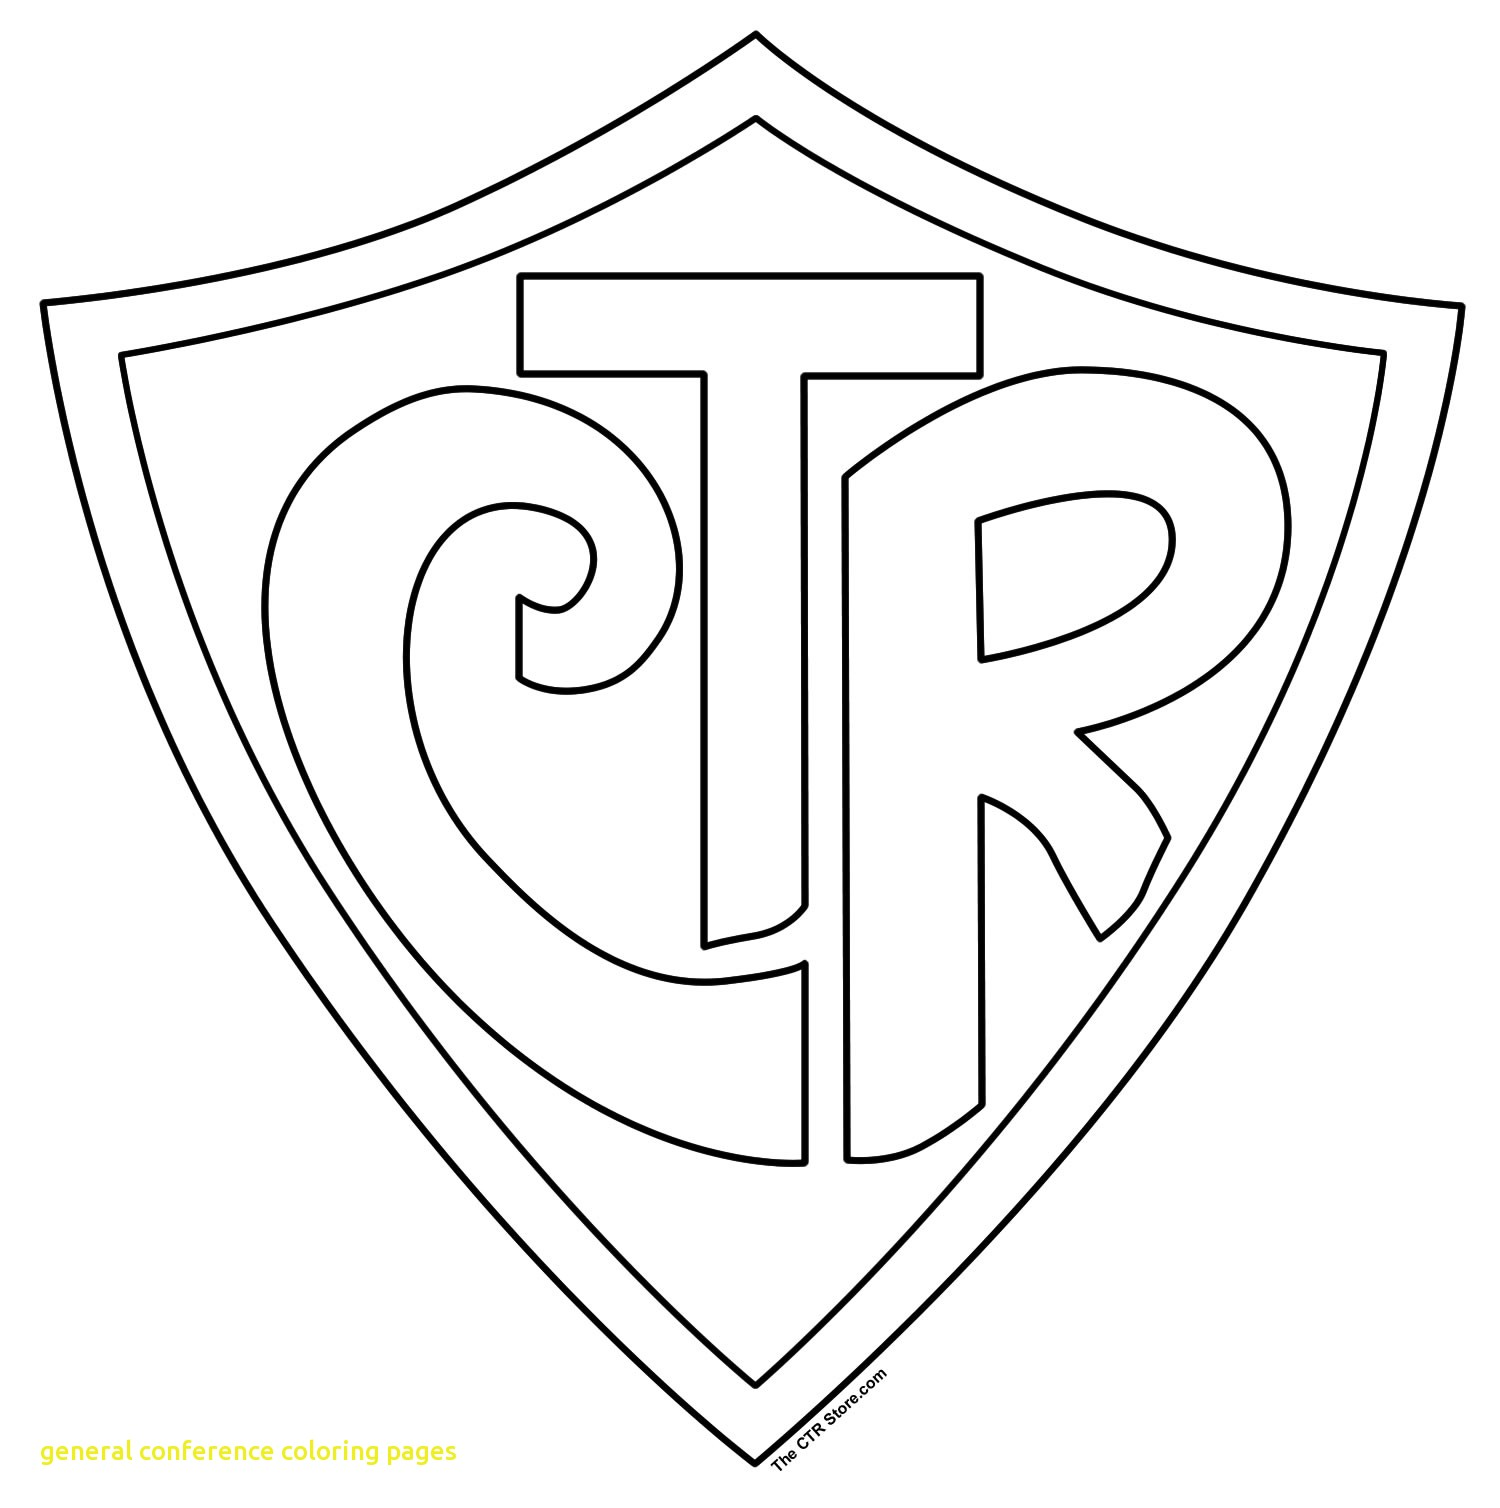 1500x1508 General Conference Coloring Pages With General Conference Coloring